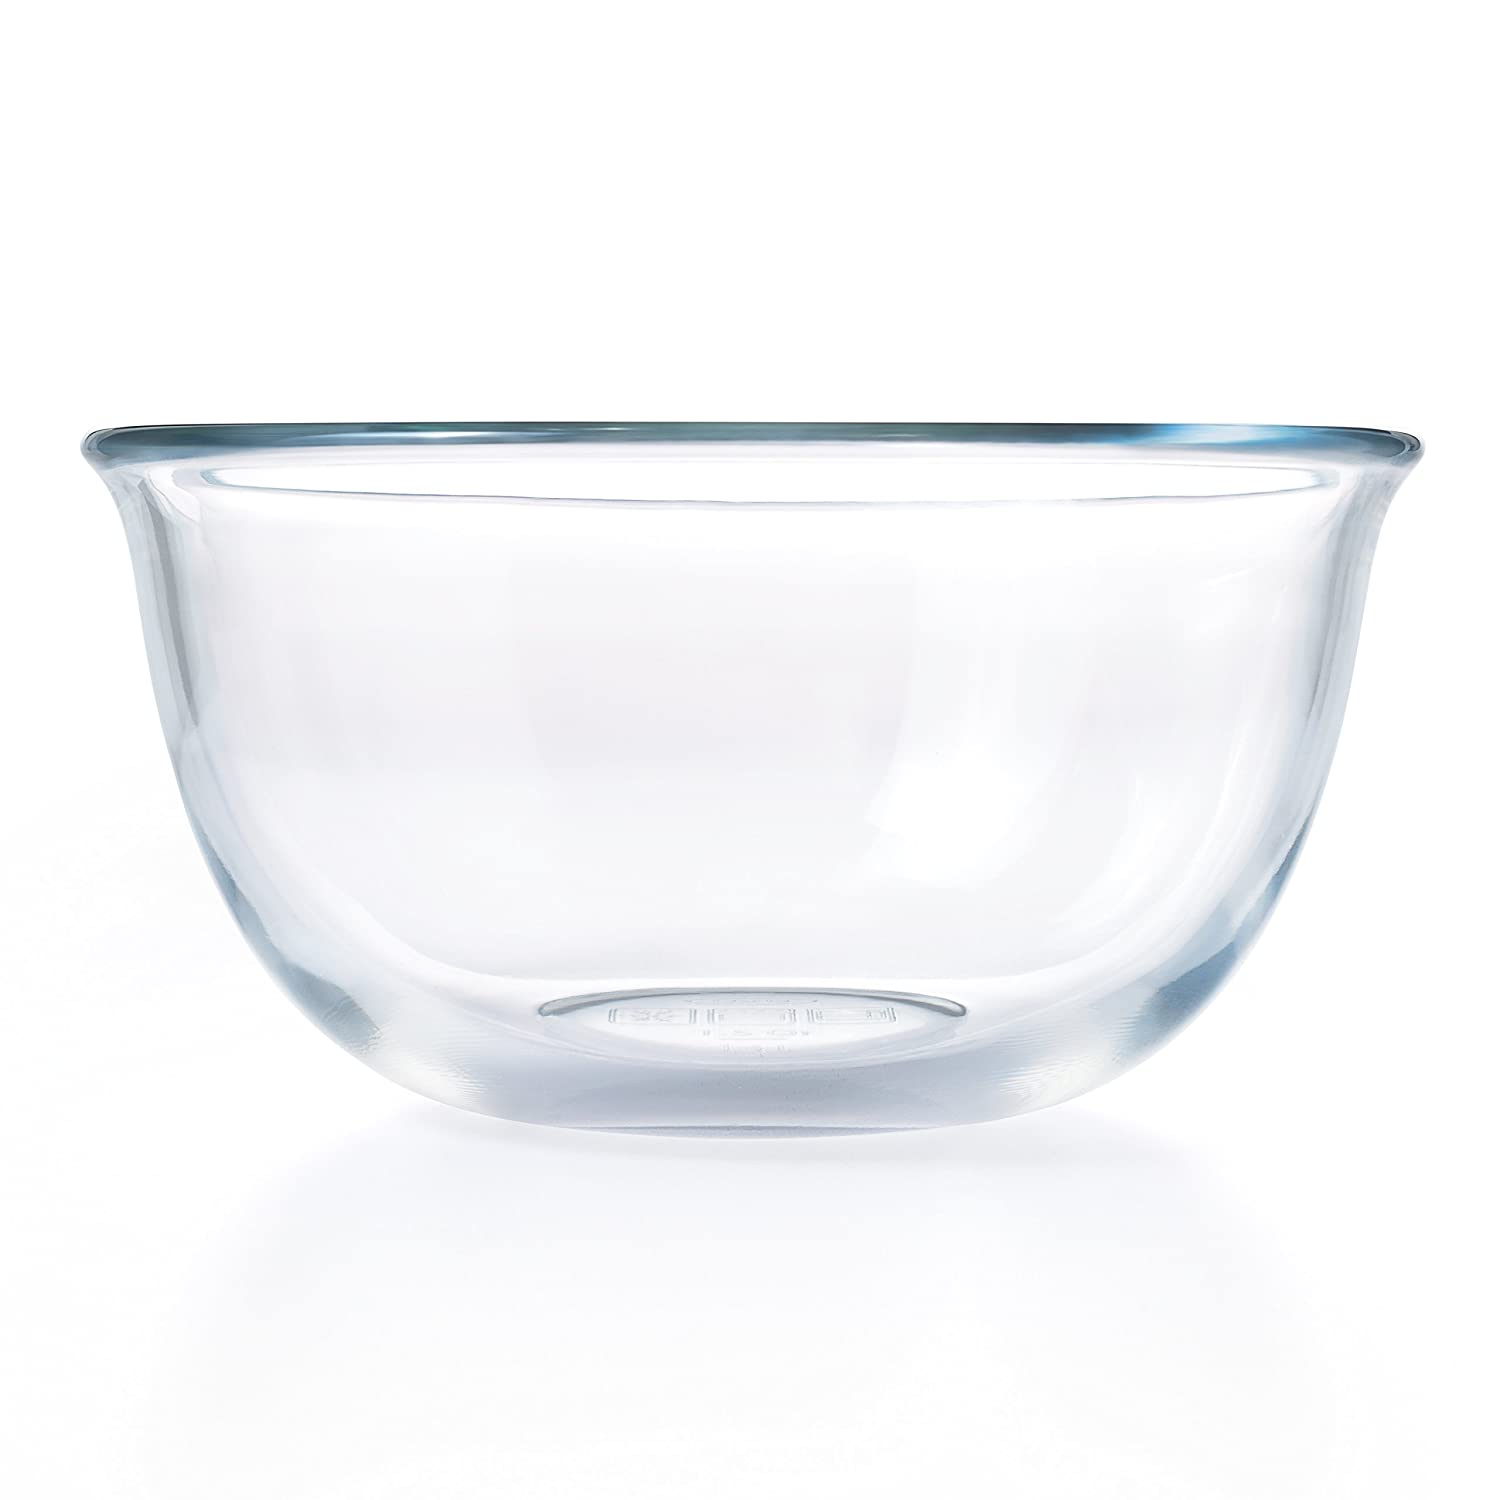 OXO Good Grips 1.5 Qt Glass Bowl